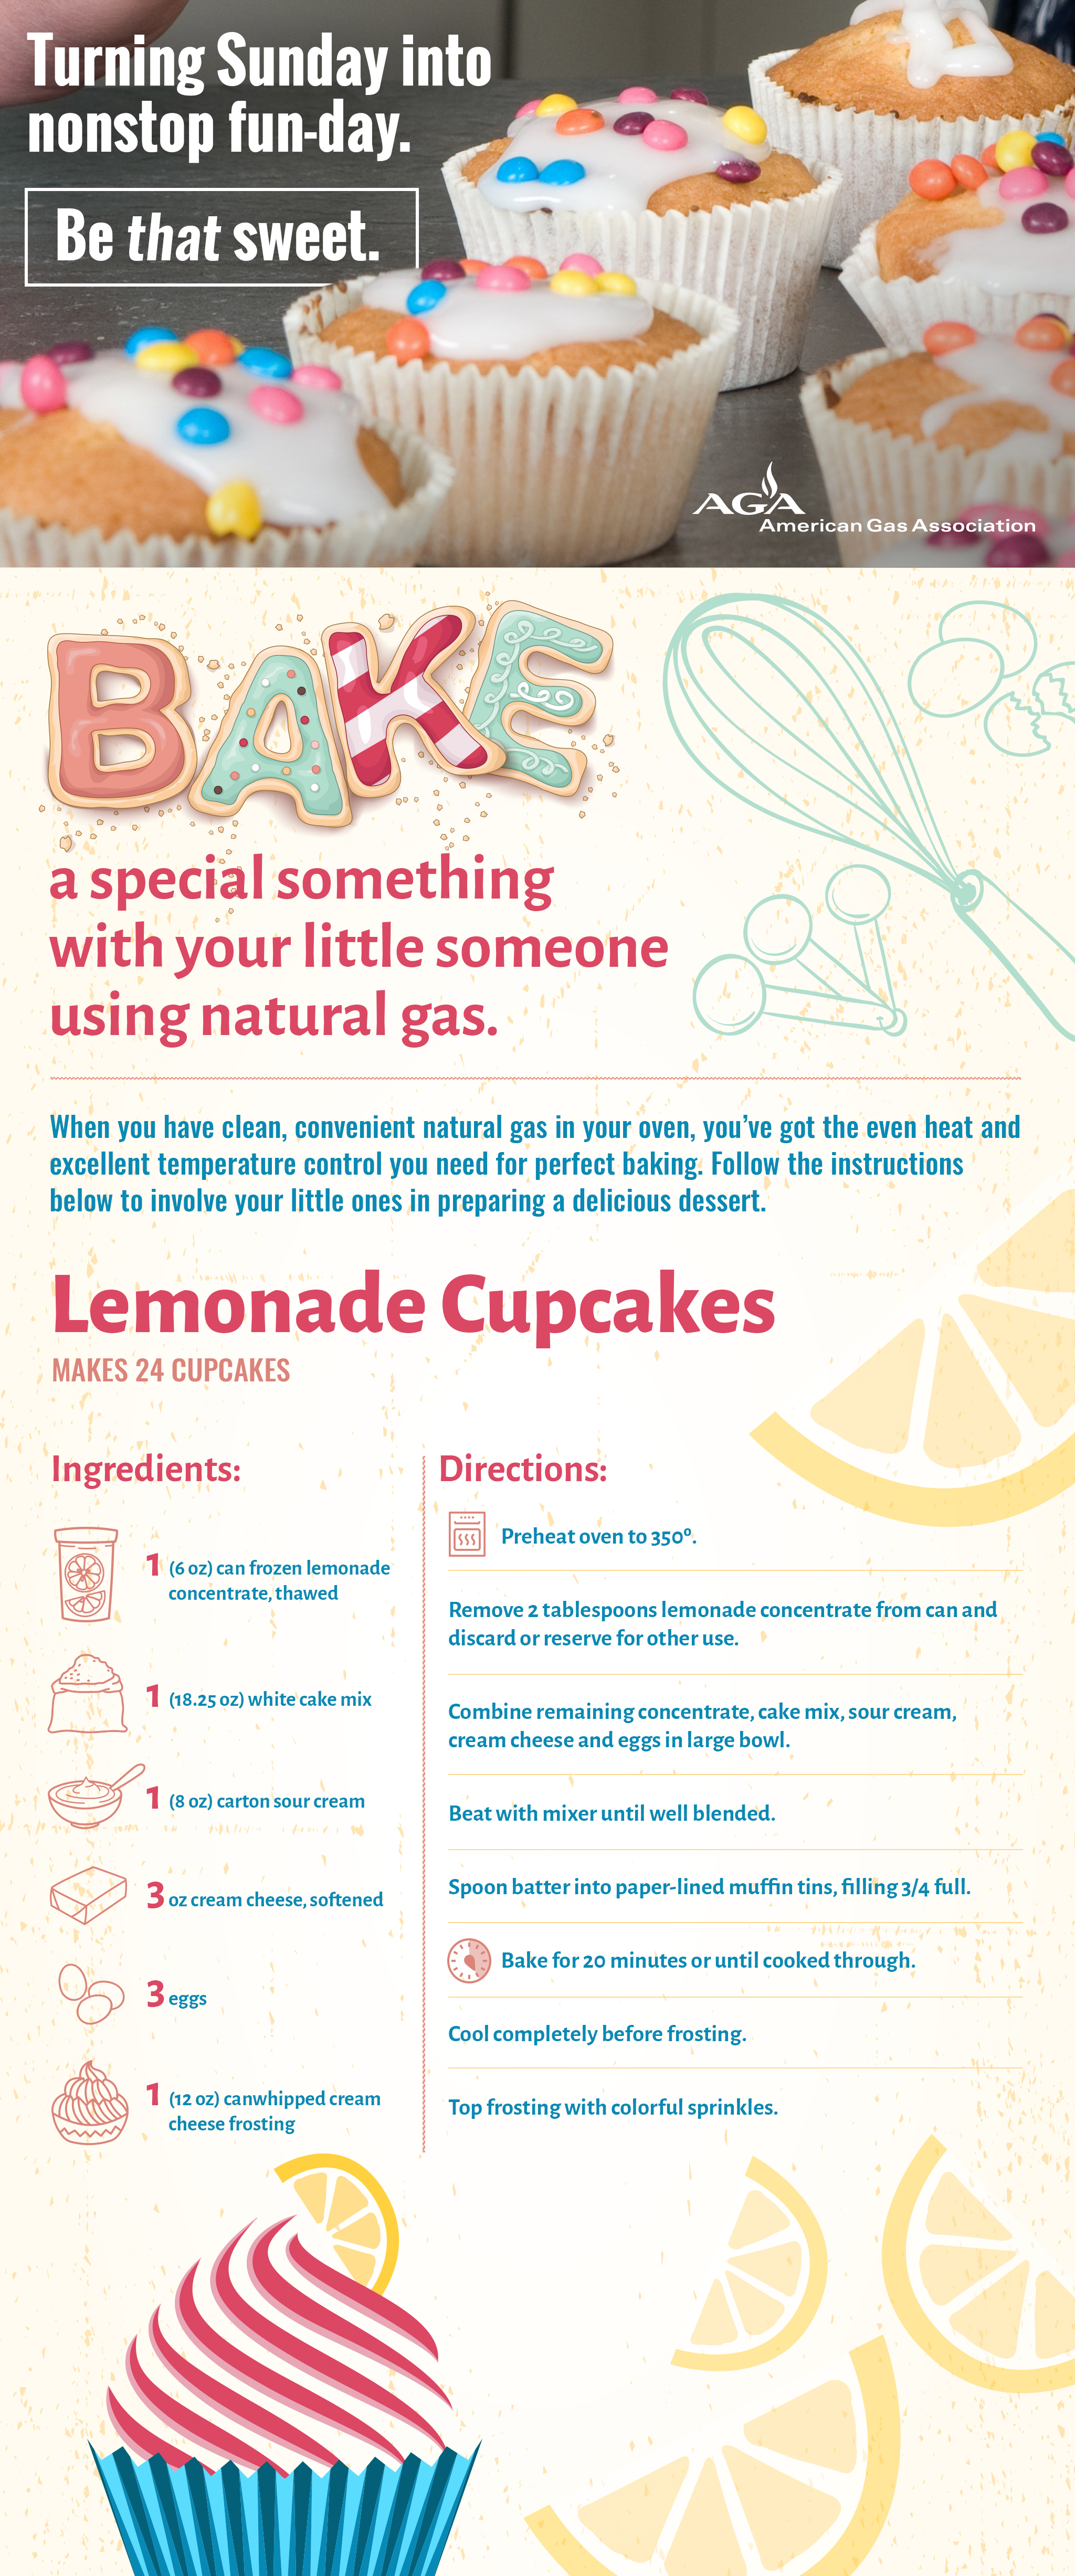 Bake a special something with your little someone using natural gas